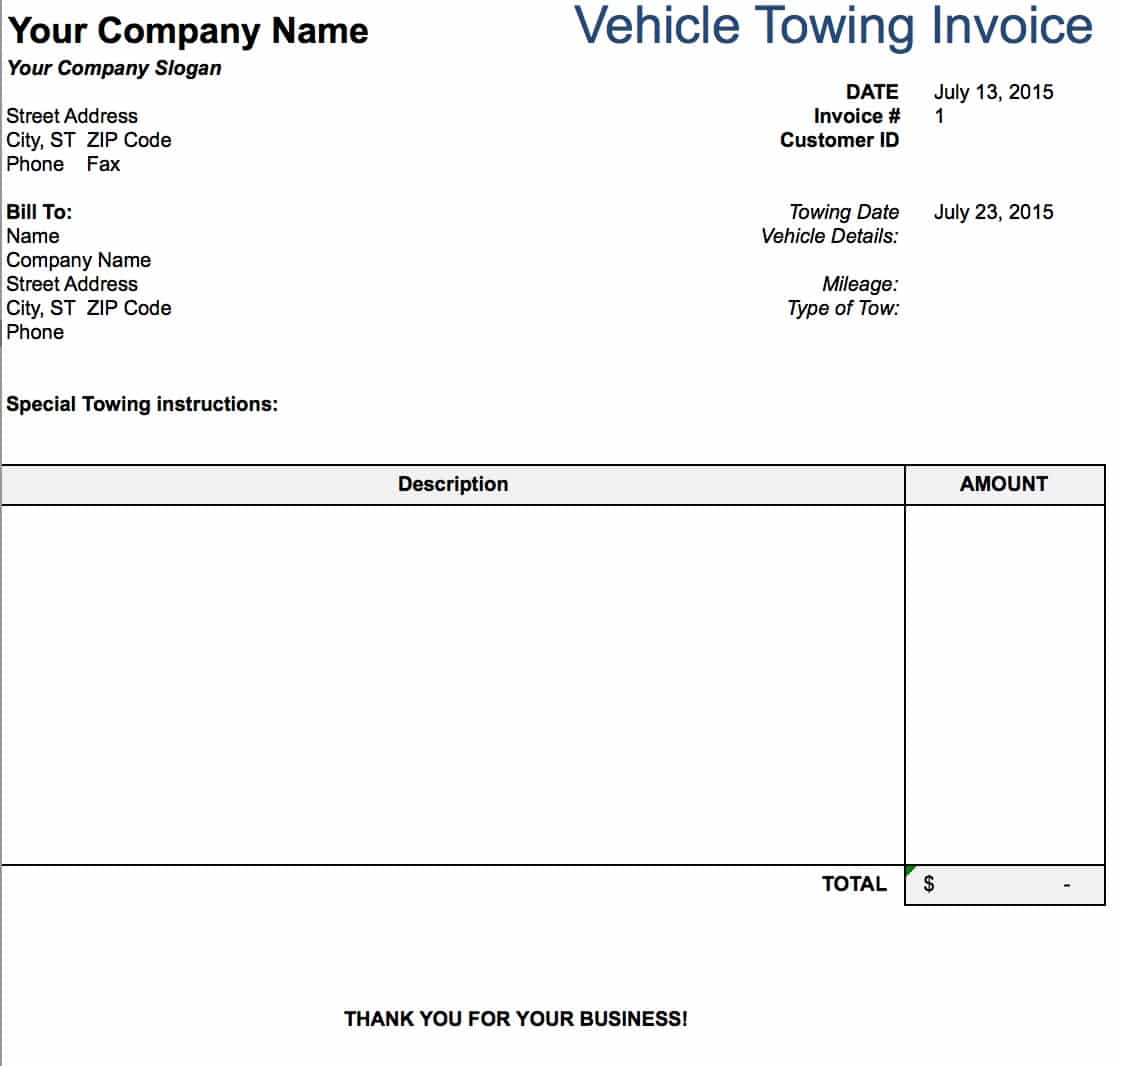 Free Tow Service Invoice Template Excel PDF Word Doc - Free invoice forms templates for service business